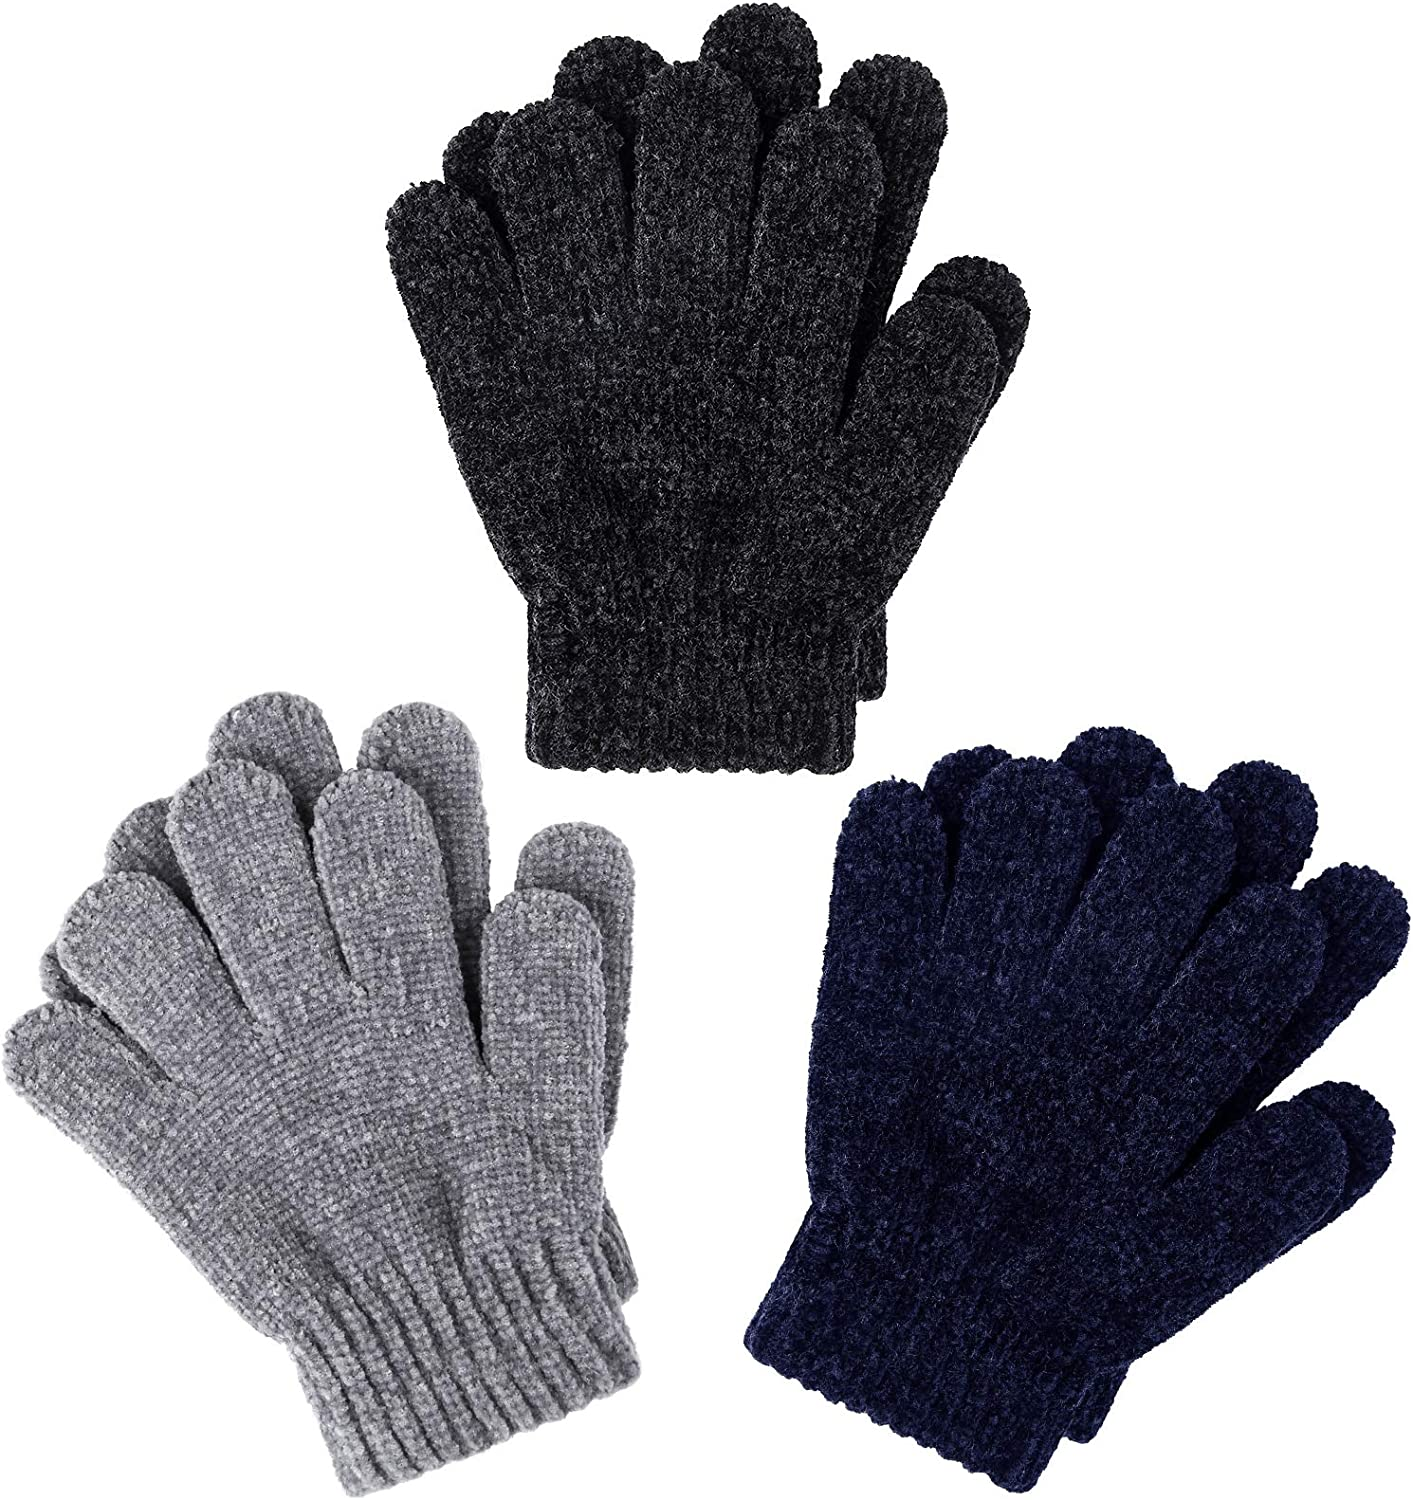 Cooraby 3 Pairs Warm Chenille Gloves Kids Stretchy Cashmere Knitted Gloves for Girls, Boys